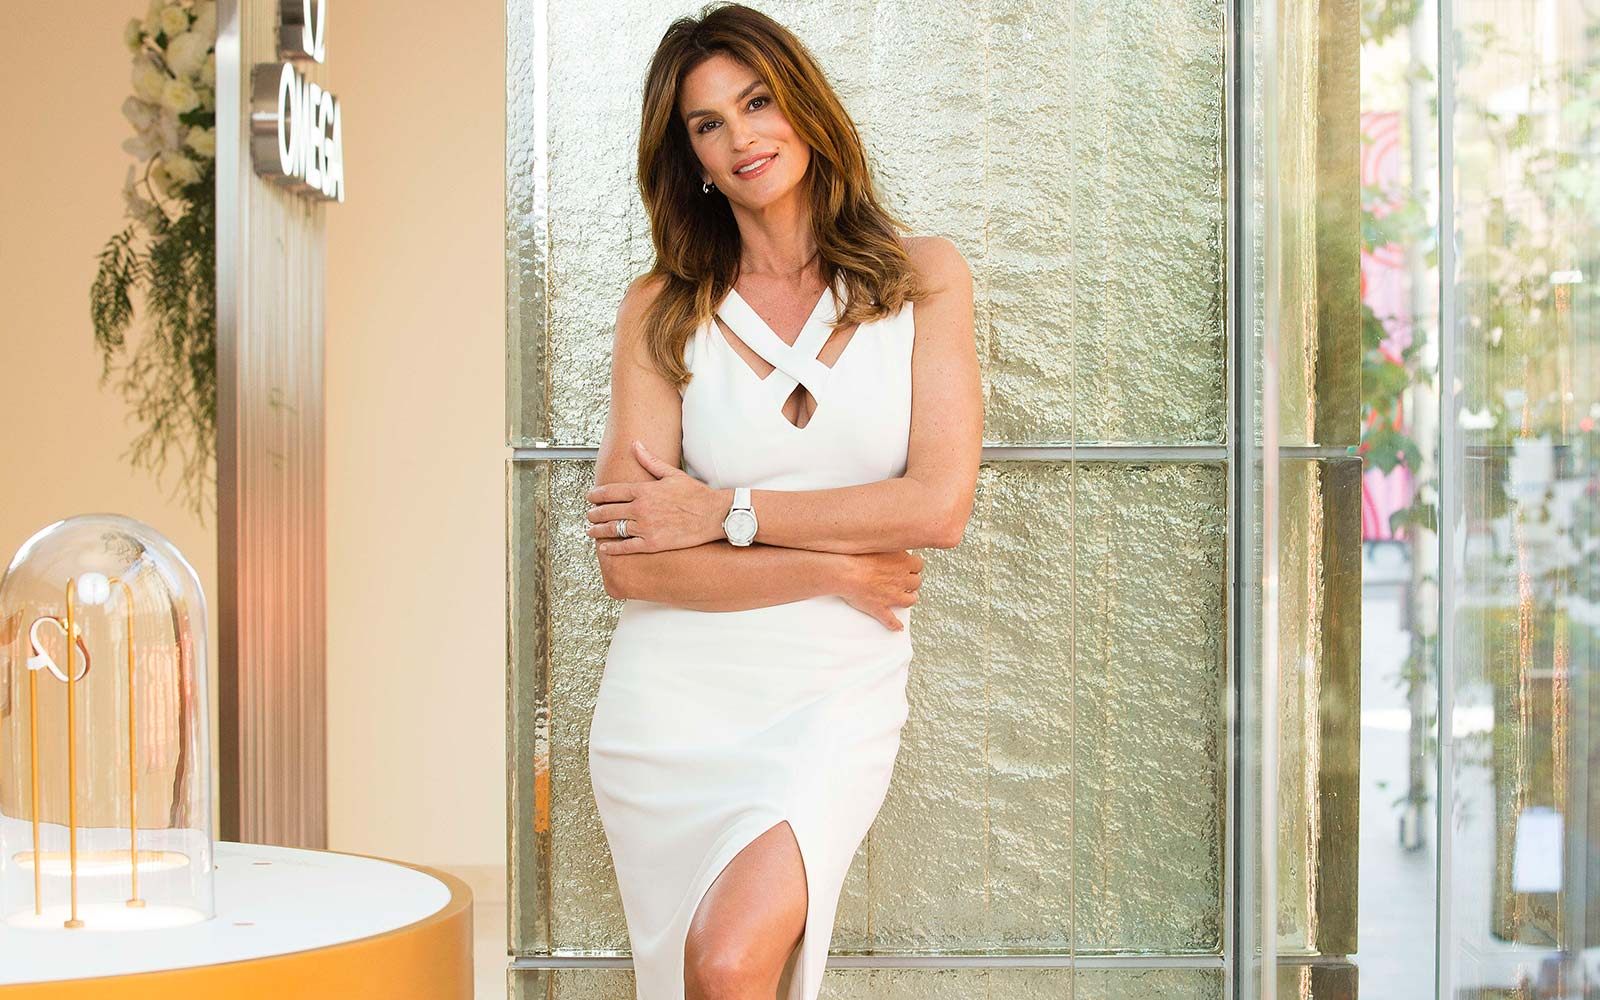 Model Cindy Crawford poses during an Omega Boutique media call in Sydney Australia